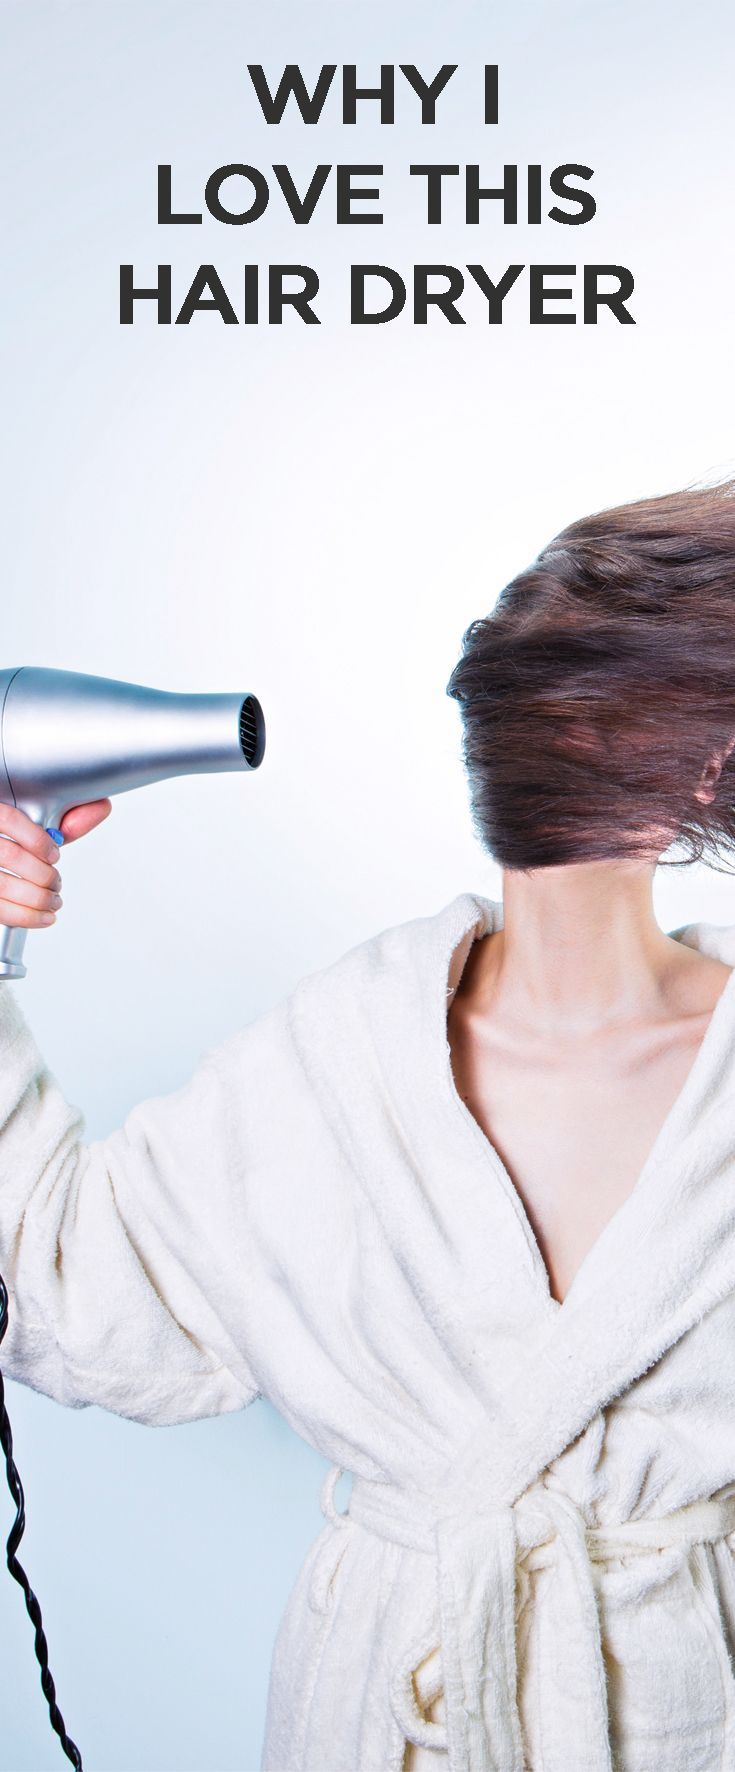 Blow dryers are simply indispensable, but they are not all made equal. Getting a cheap hair dryer – or even an expensive one that doesn't work right